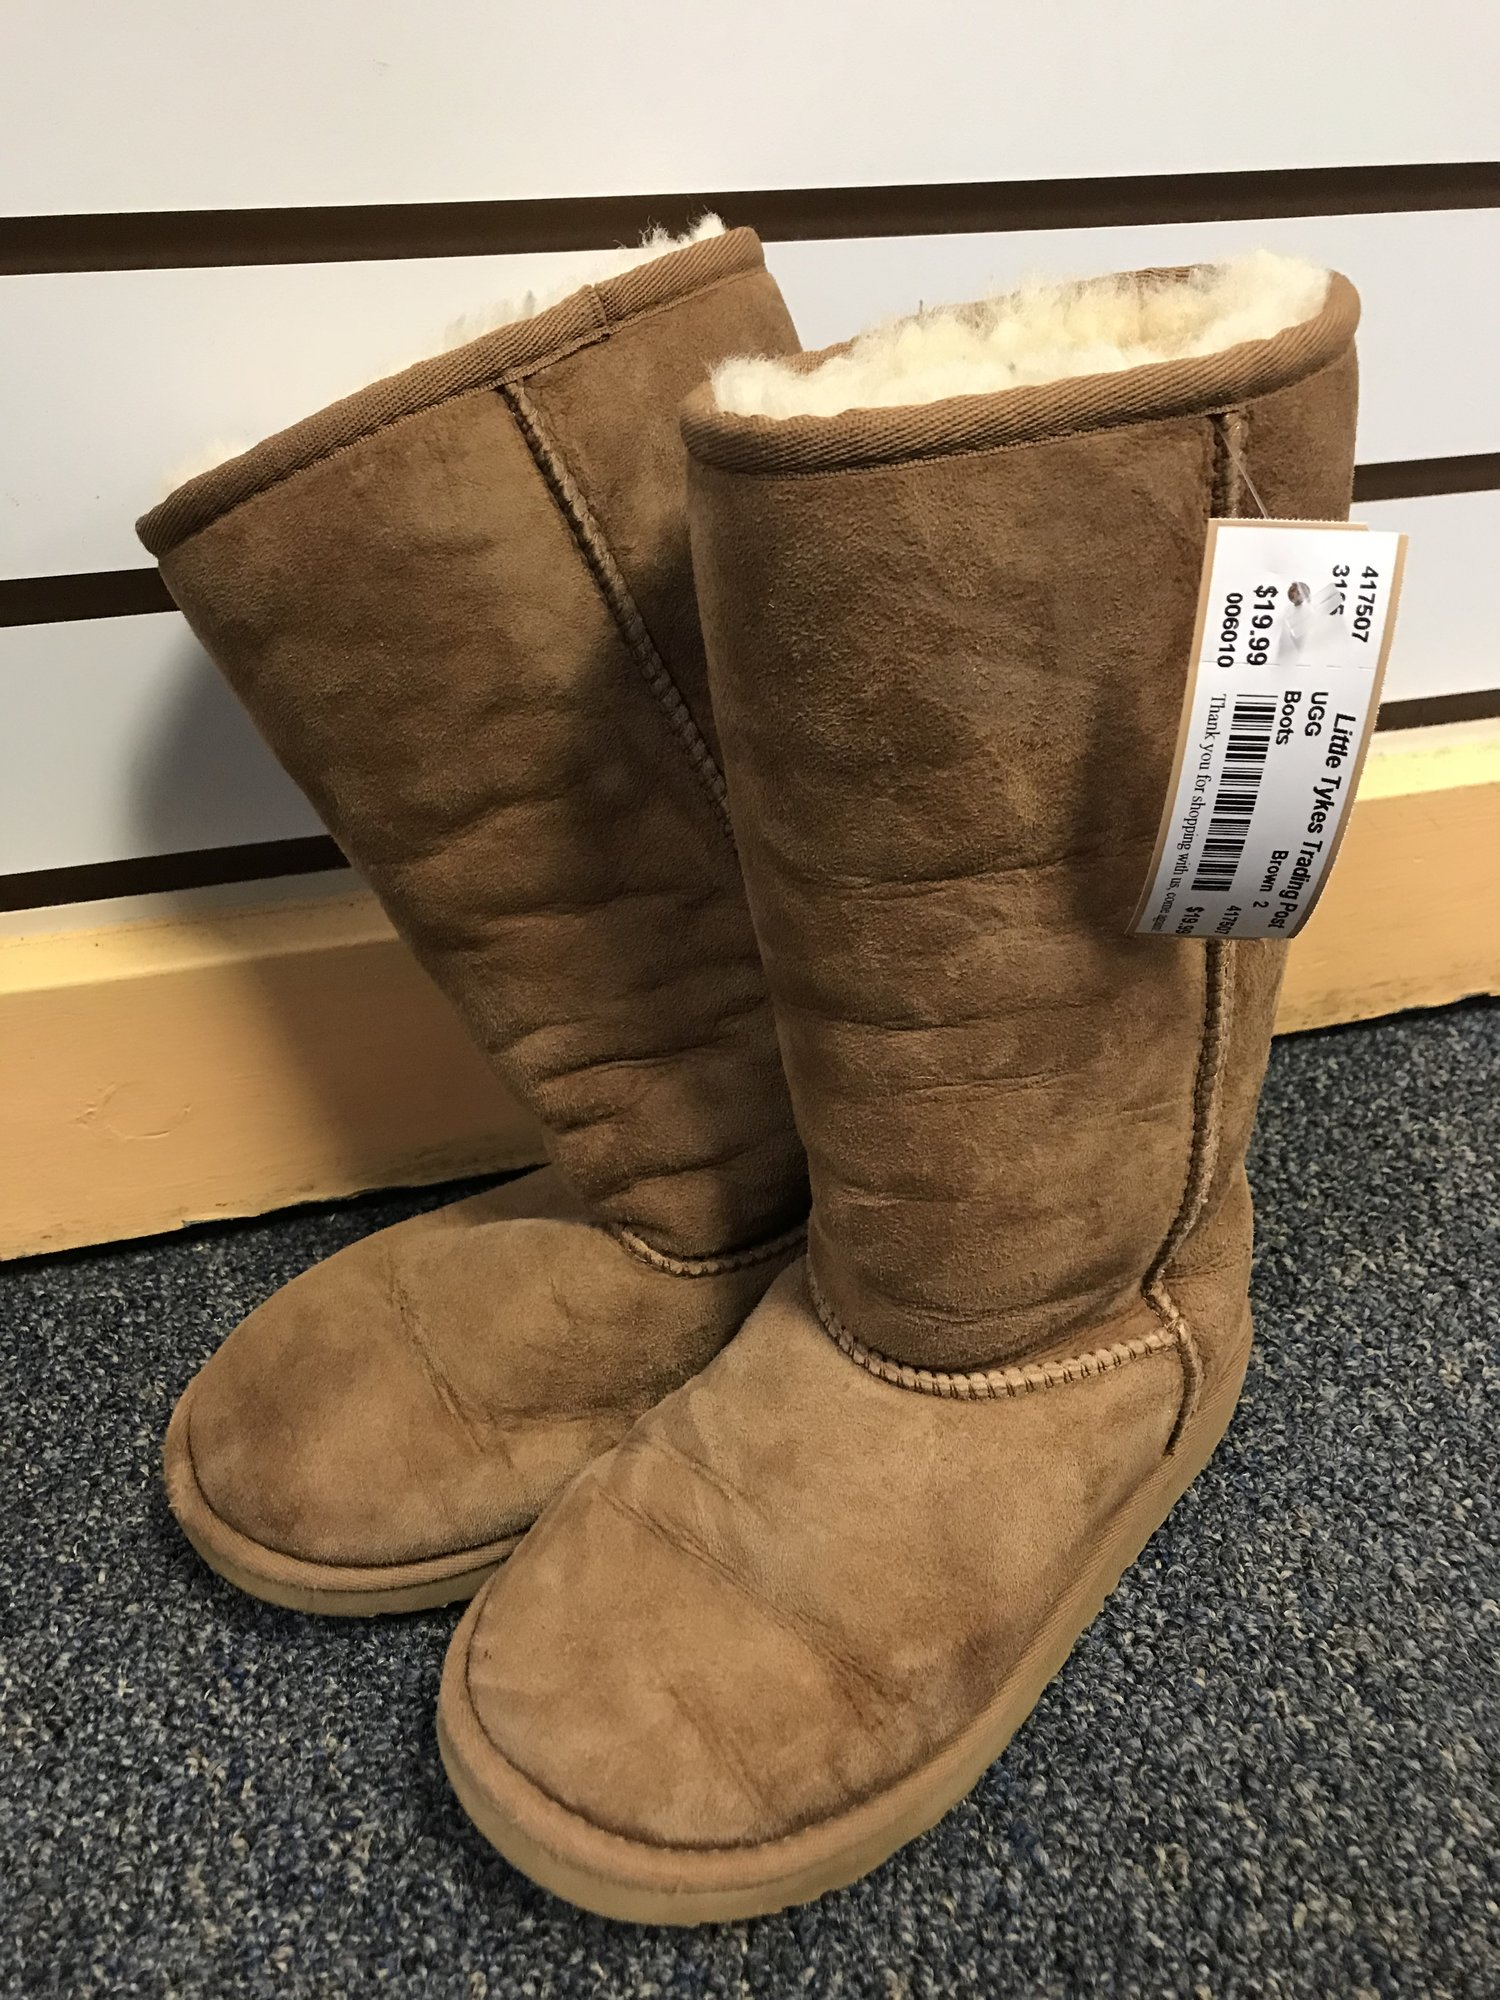 UGG Boots in great condition, size 2